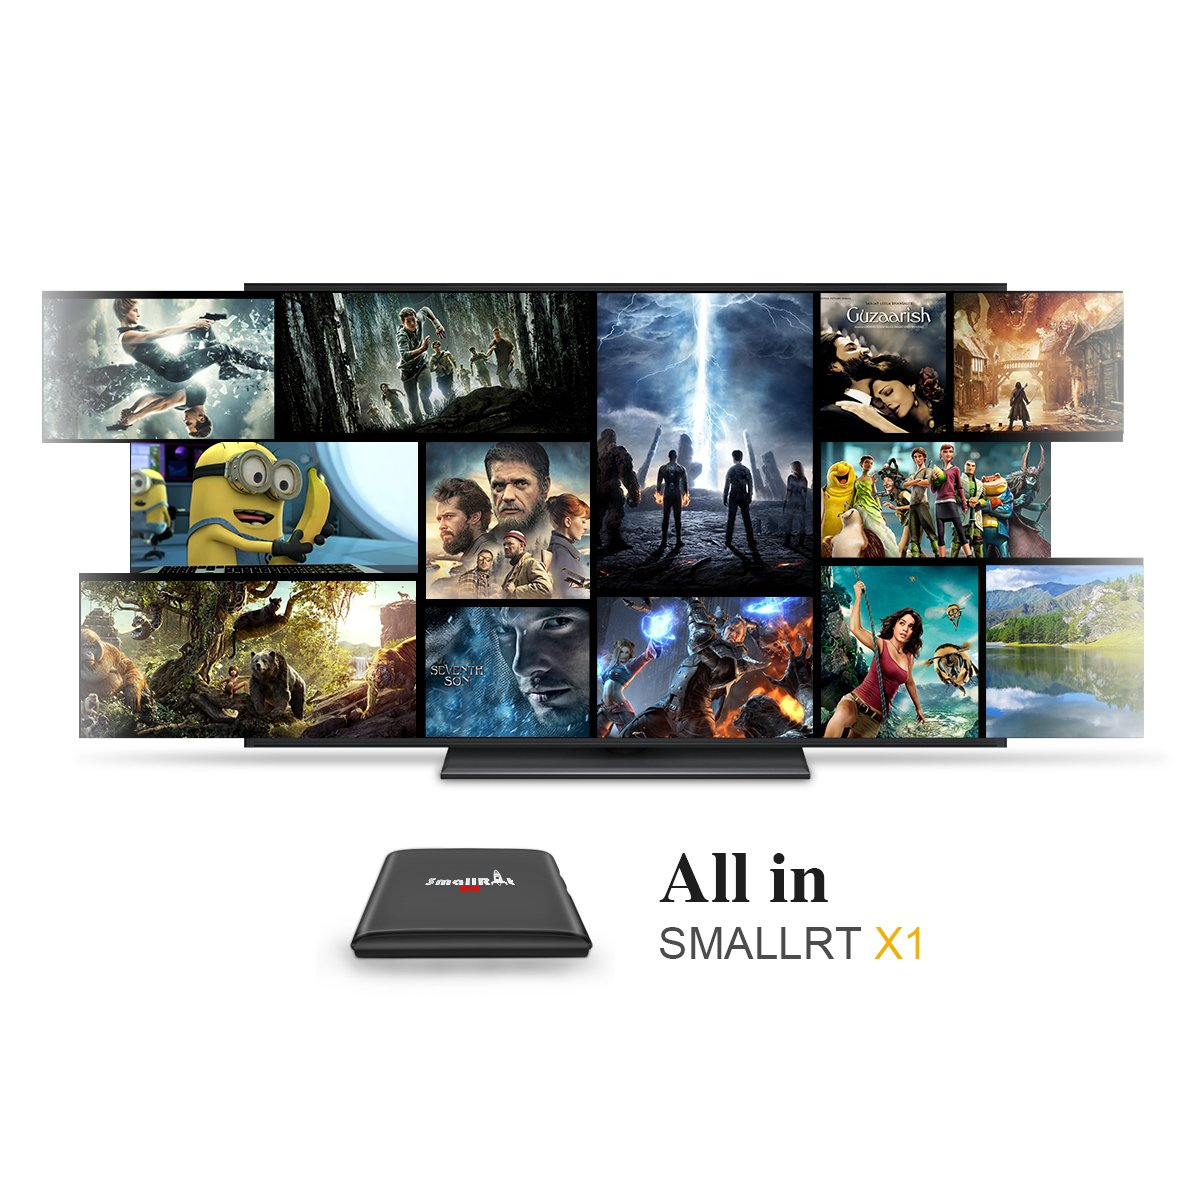 1gb ram android emulator - Amazon Com Tv Box Smallrt X1 Android 6 0 Marshmallow Setup Box With Built In Rockchip Quad Core 1gb Ram 8gb Rom Wifi Perfect For Home Entertainment